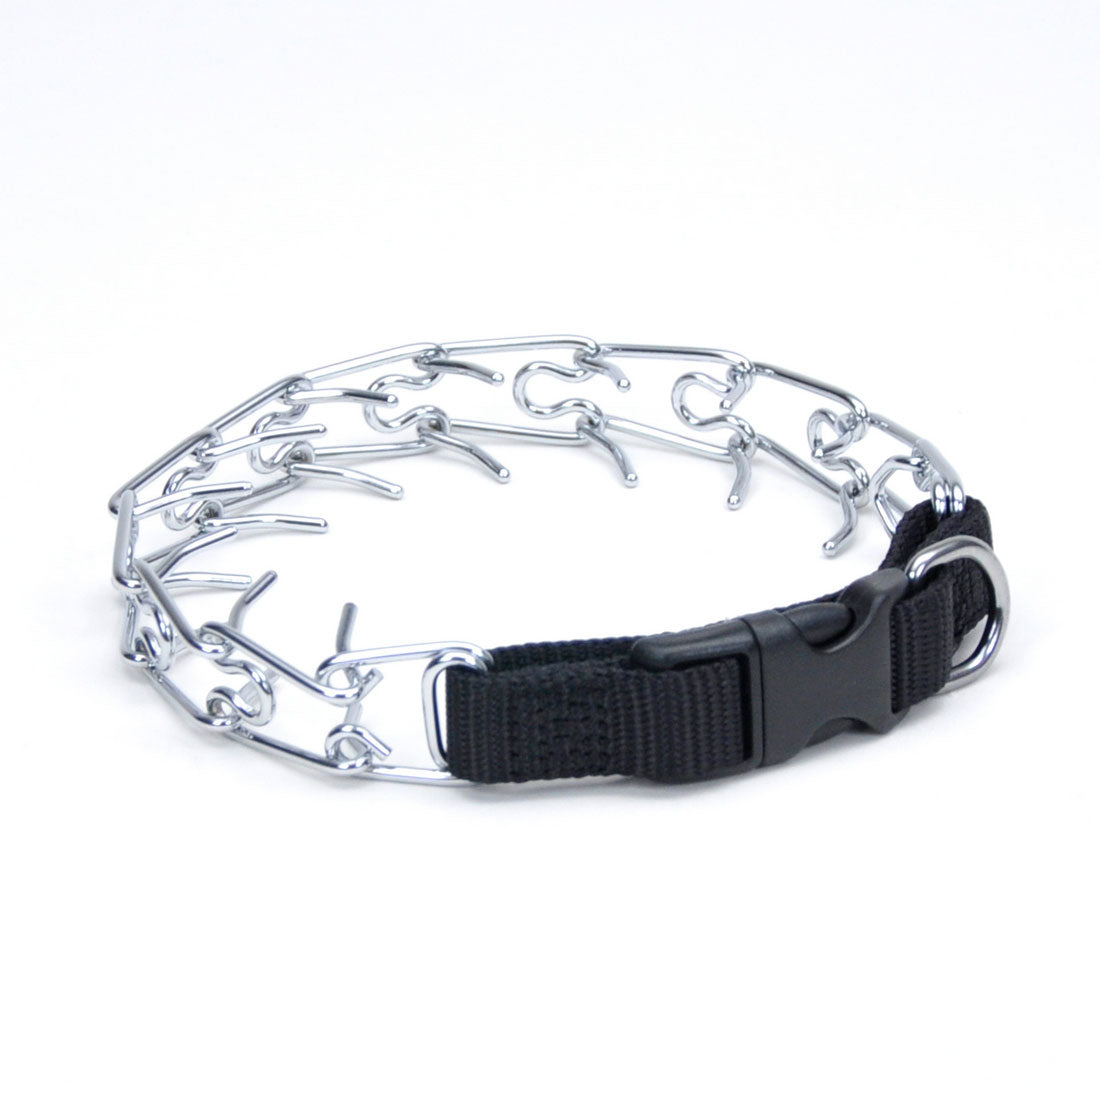 Coastal Pet Products 05592-blk18 Titan Easy-on Dog Prong Training Collar With Buckle